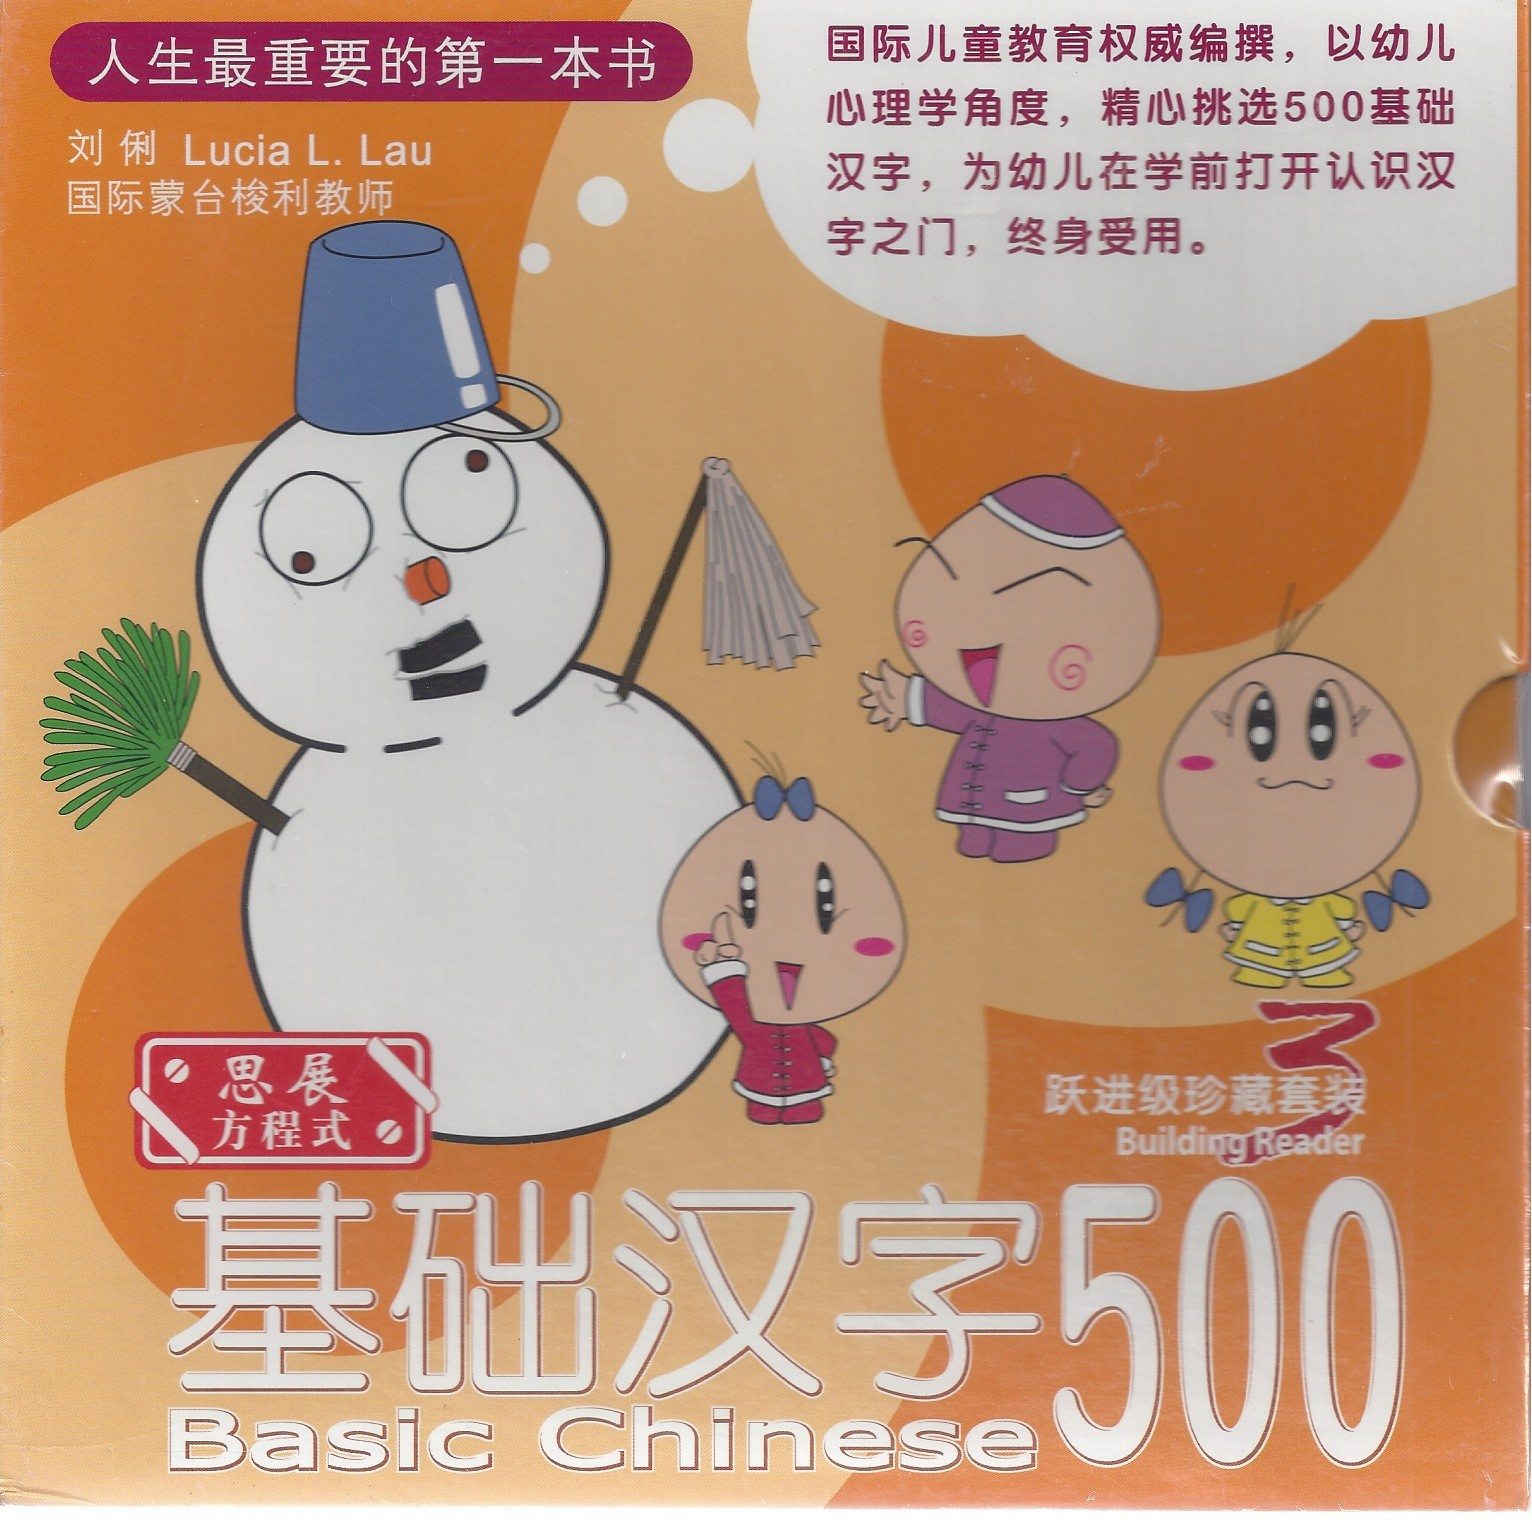 Basic Chinese 500 - Building Reader Box Set